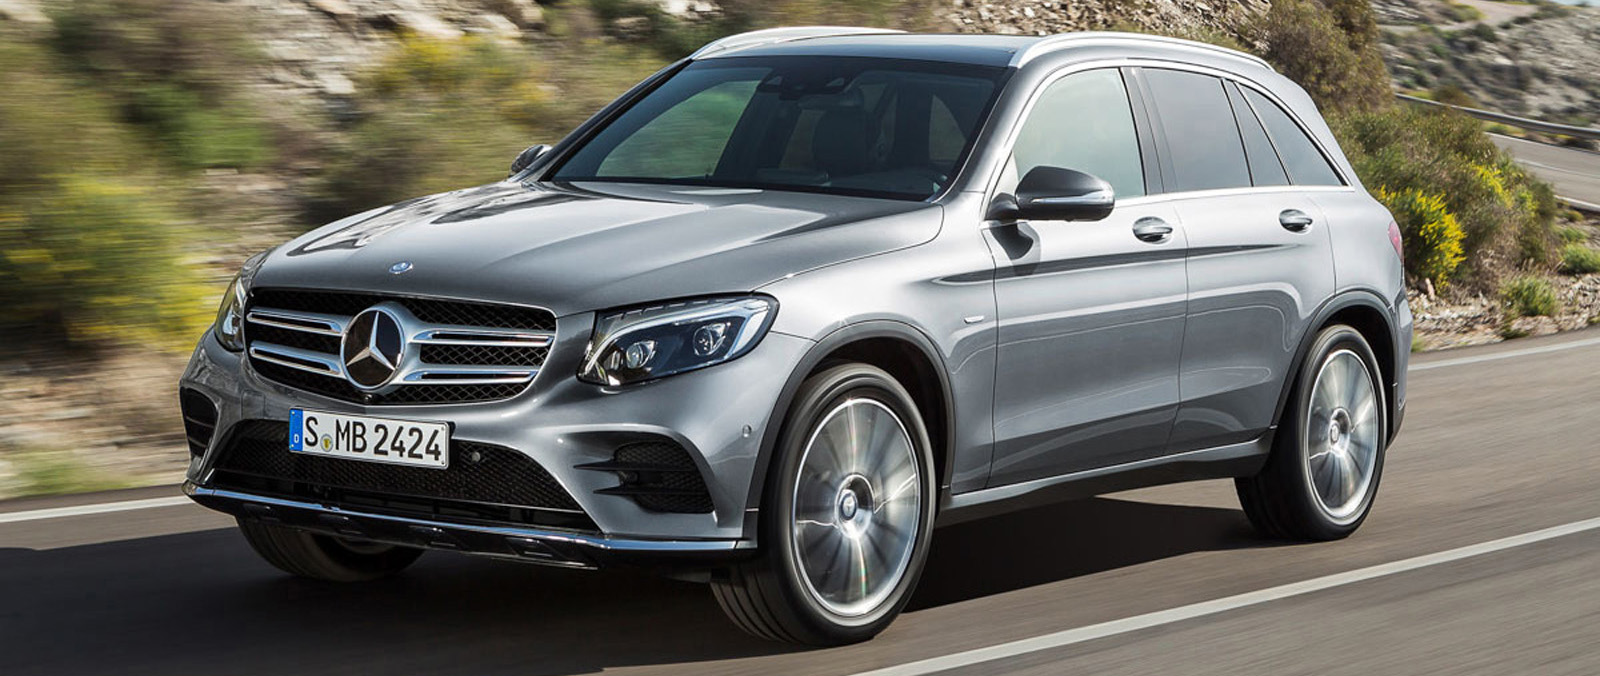 mercedes hybride glc 2016 mercedes glc plug in hybrid review top speed mercedes benz unveils. Black Bedroom Furniture Sets. Home Design Ideas